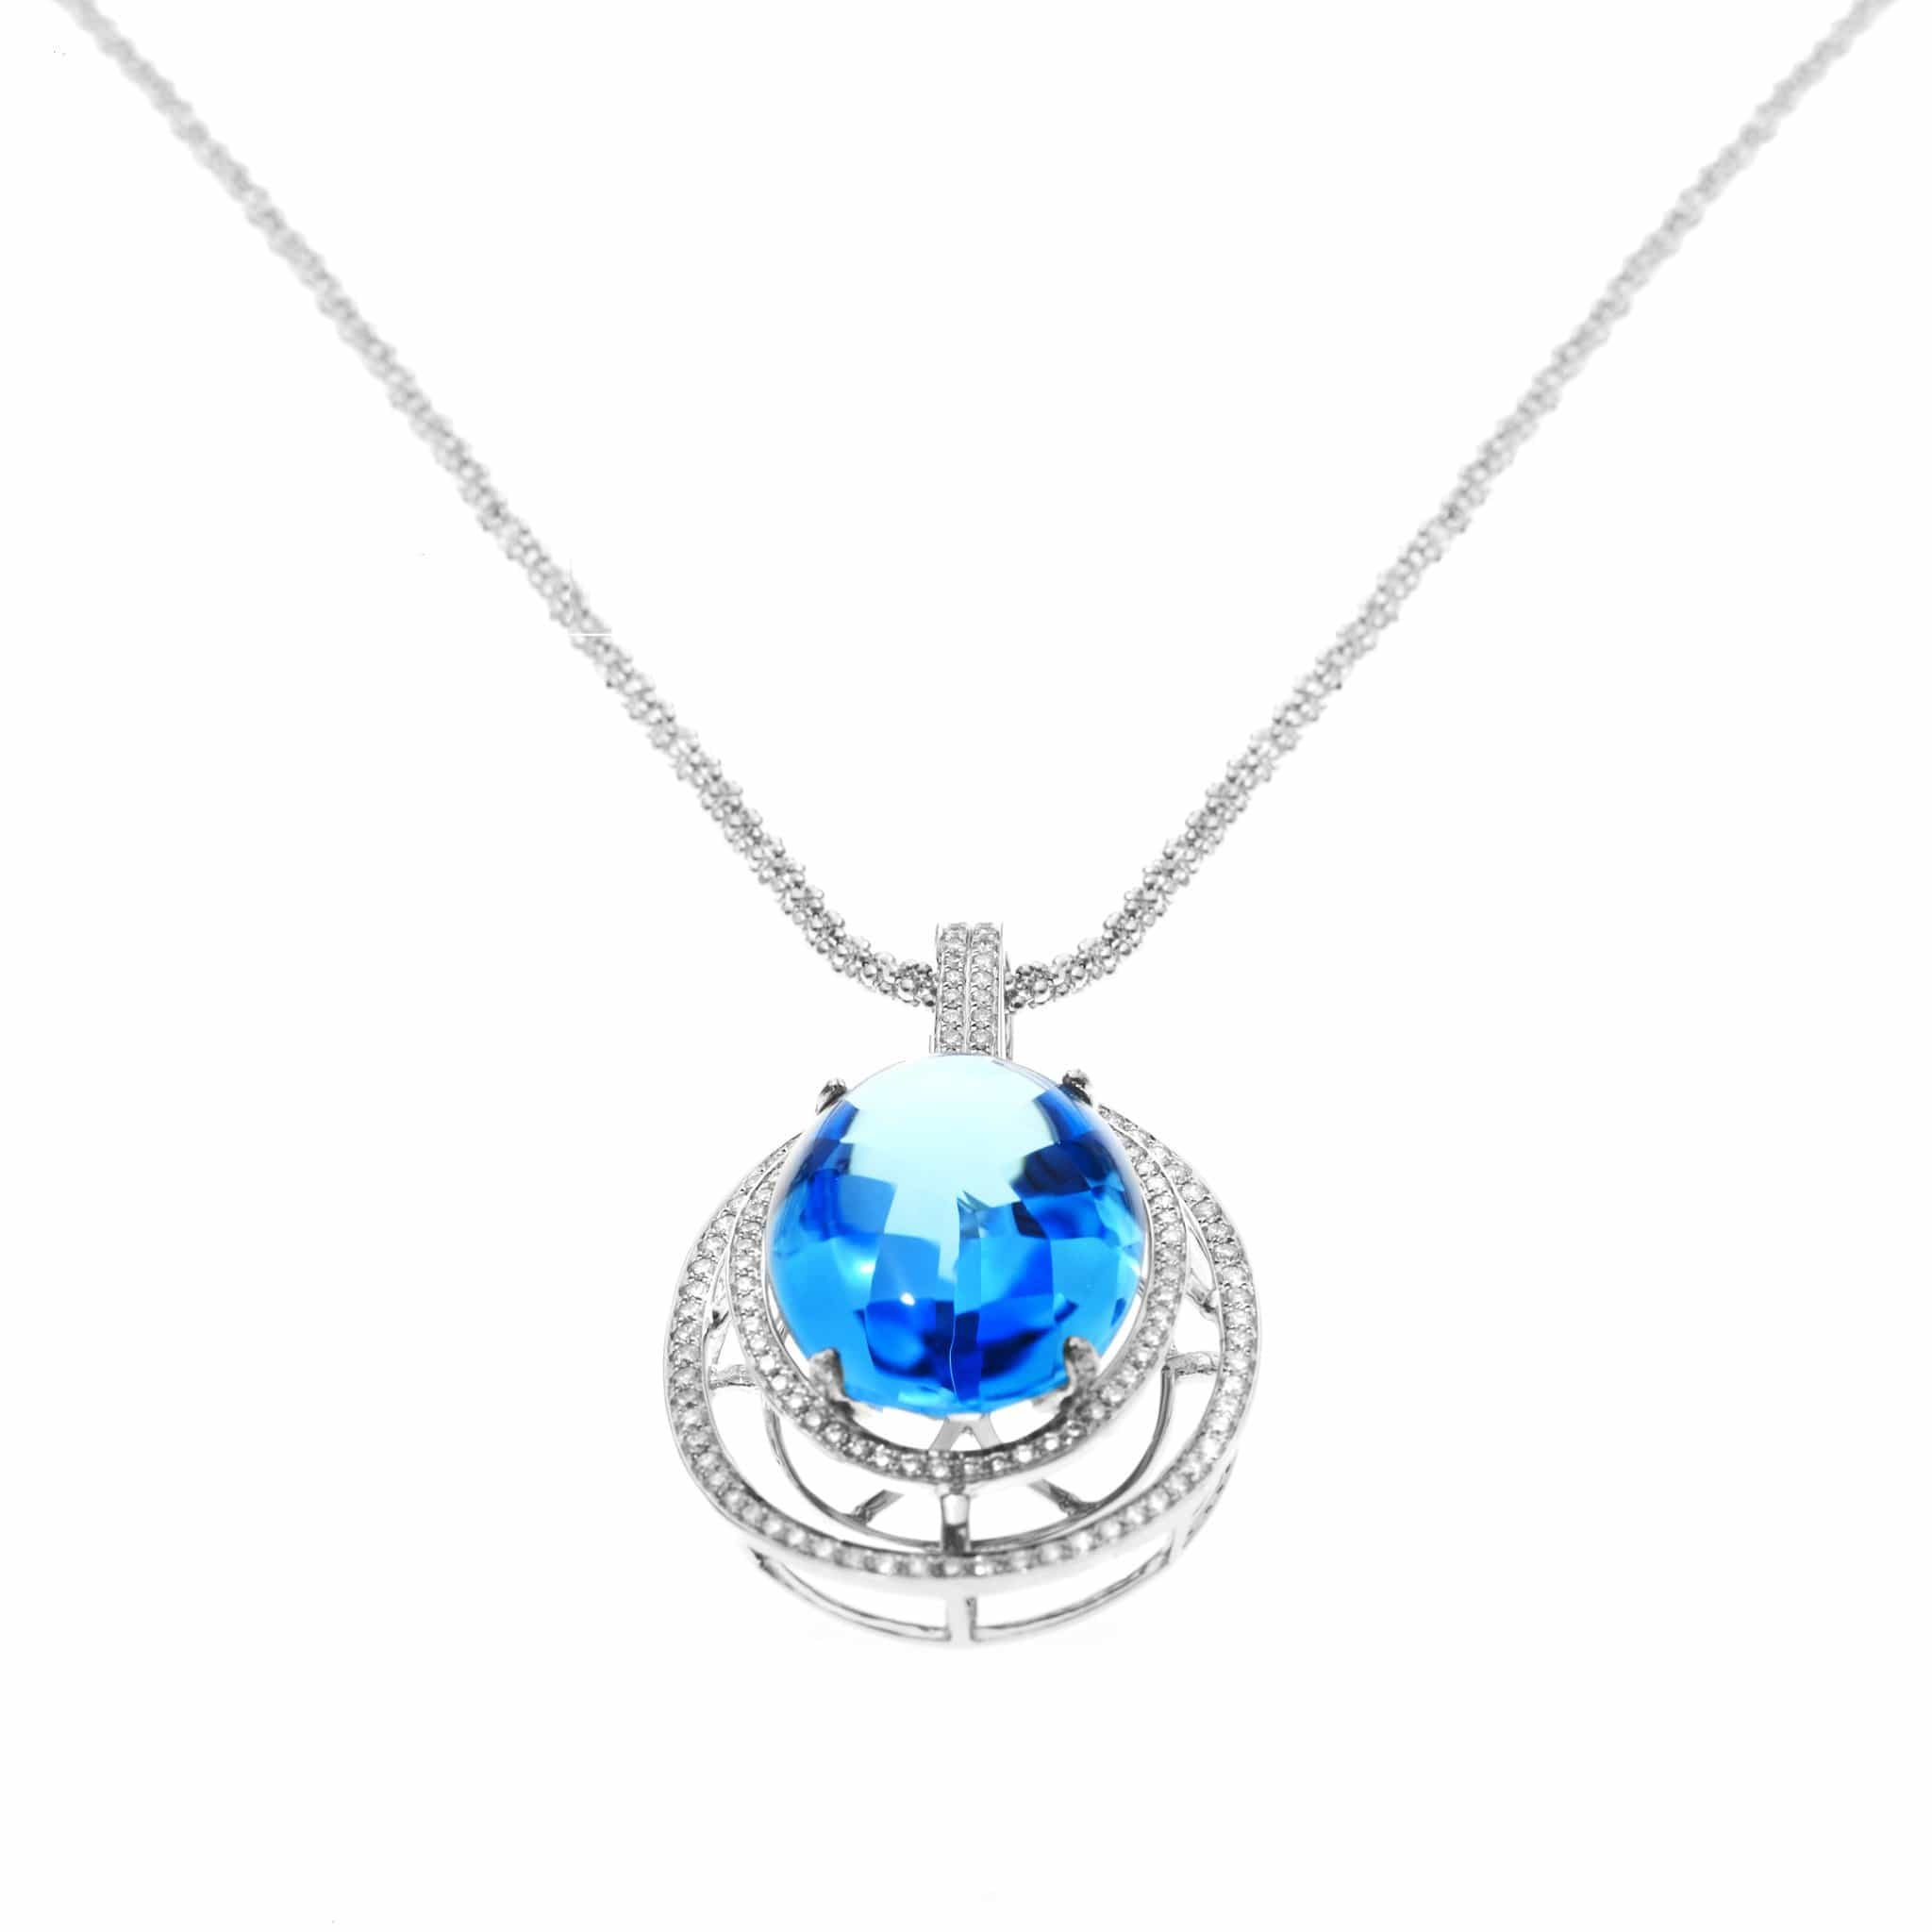 necklace of winter new york forest blue vasa product topaz image